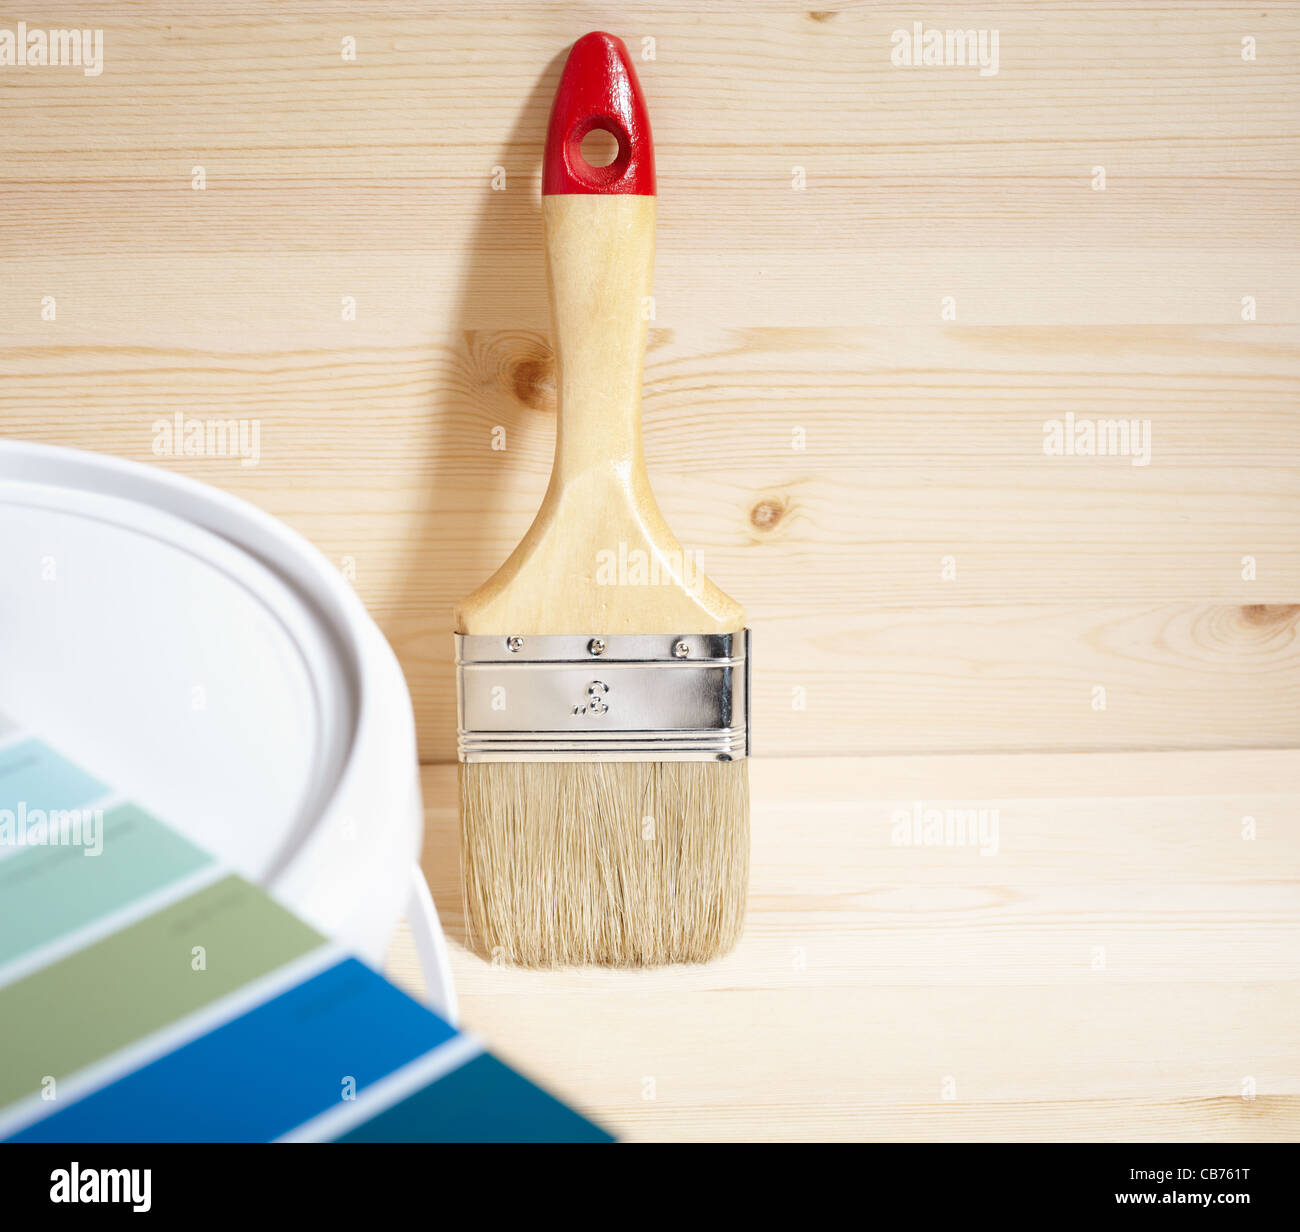 painting brush and gamut prints - Stock Image